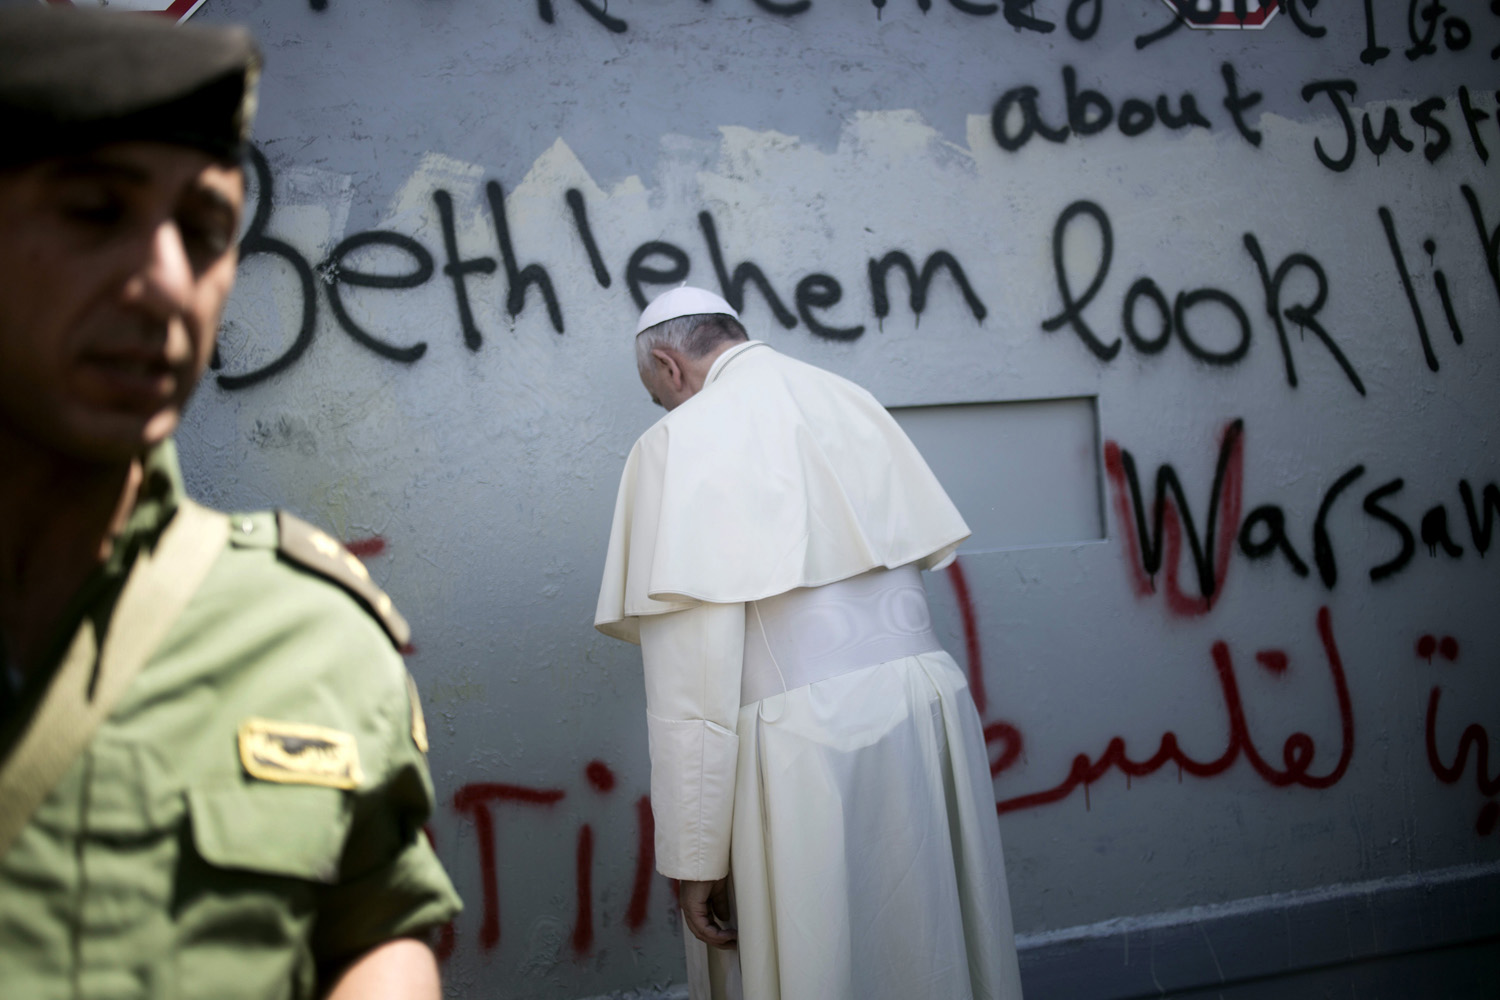 Pope Francis prays at Israel's separation barrier on his way to a mass in Manger Square next to the Church of the Nativity, traditionally believed to be the birthplace of Jesus Christ, in the West Bank town of Bethlehem on May 25, 2014.